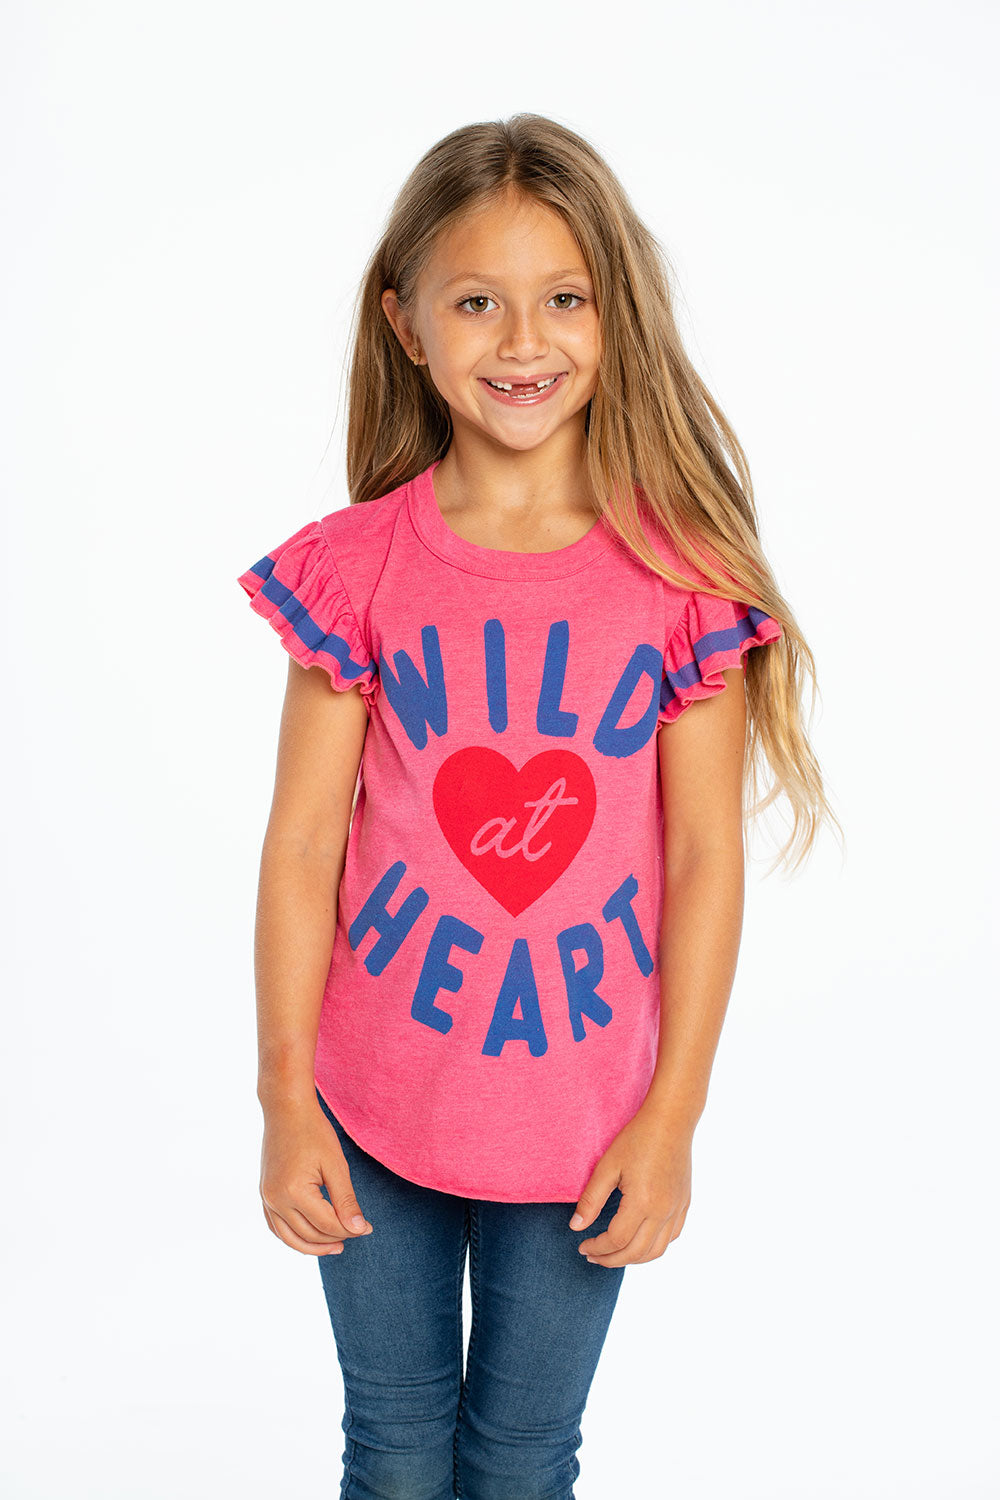 Wild At Heart, GIRLS, chaserbrand.com,chaser clothing,chaser apparel,chaser los angeles